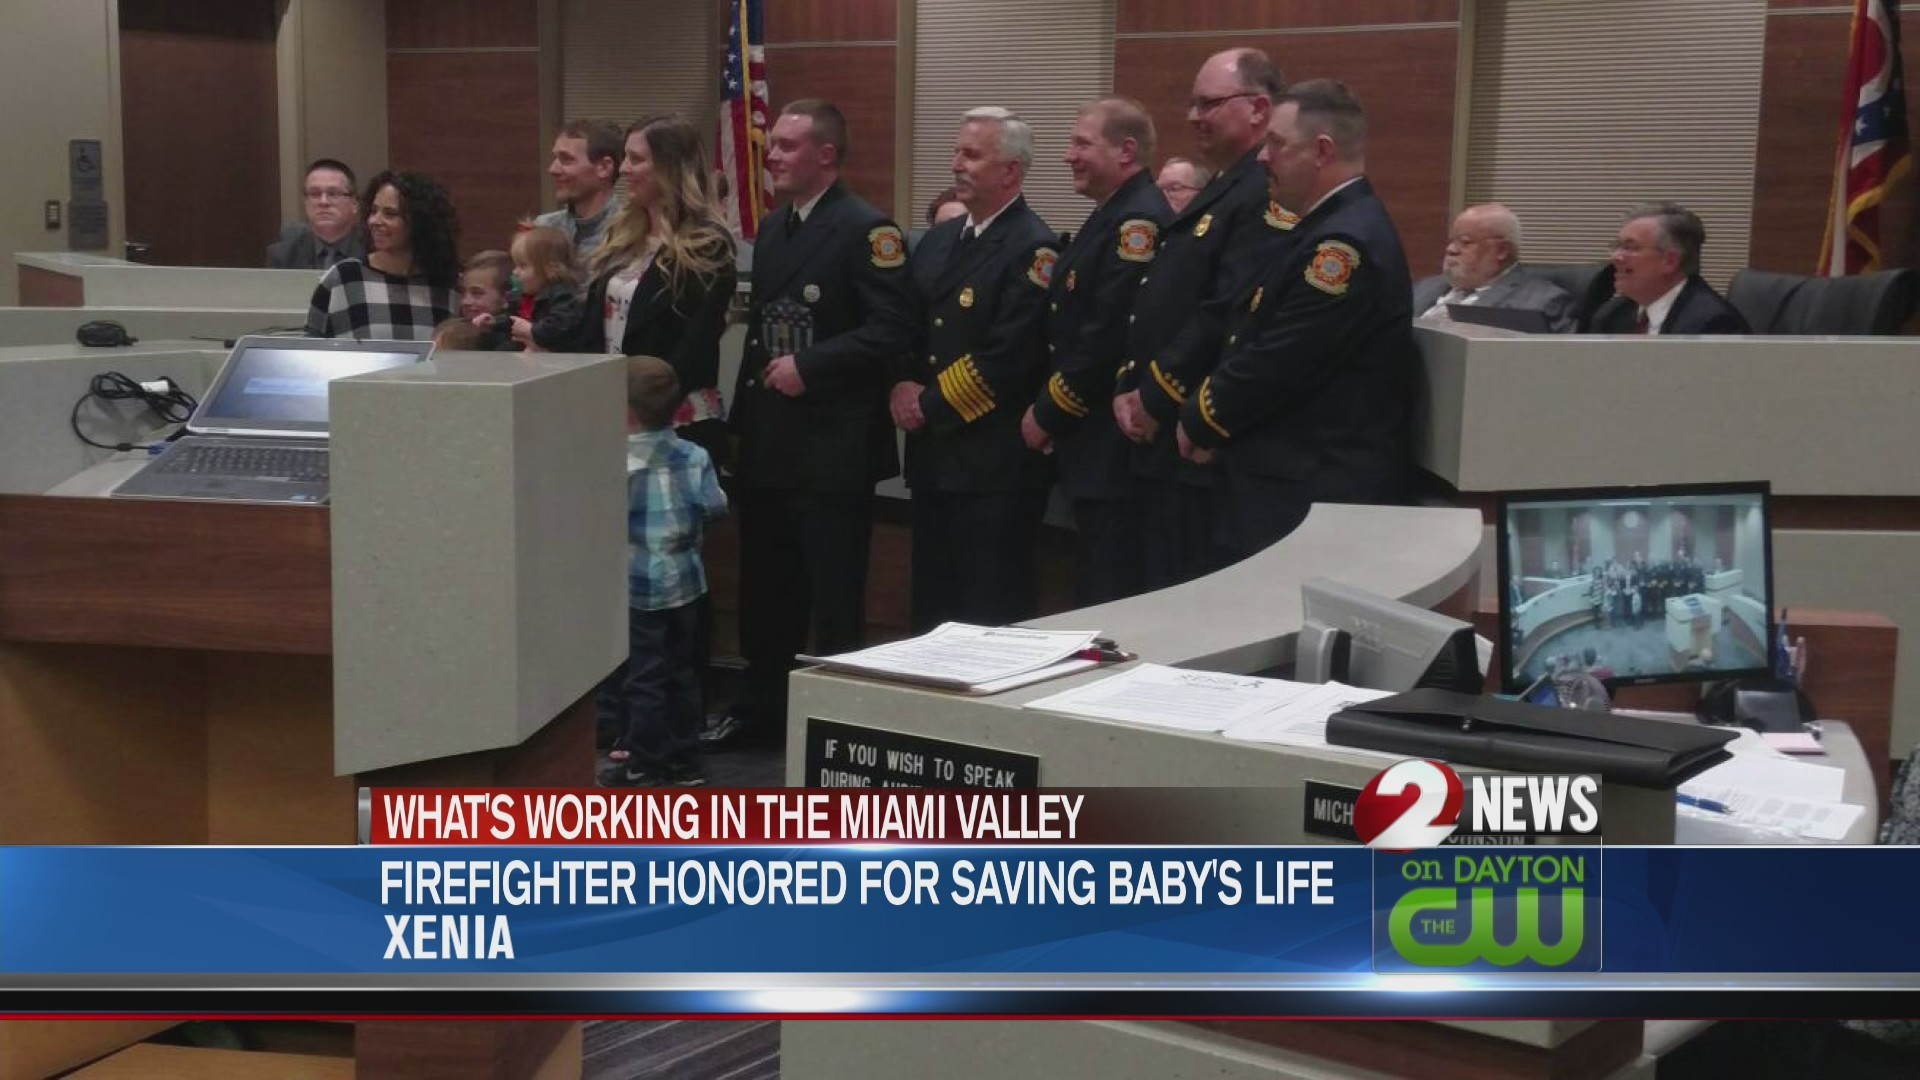 Xenia firefighter honored for saving baby's life